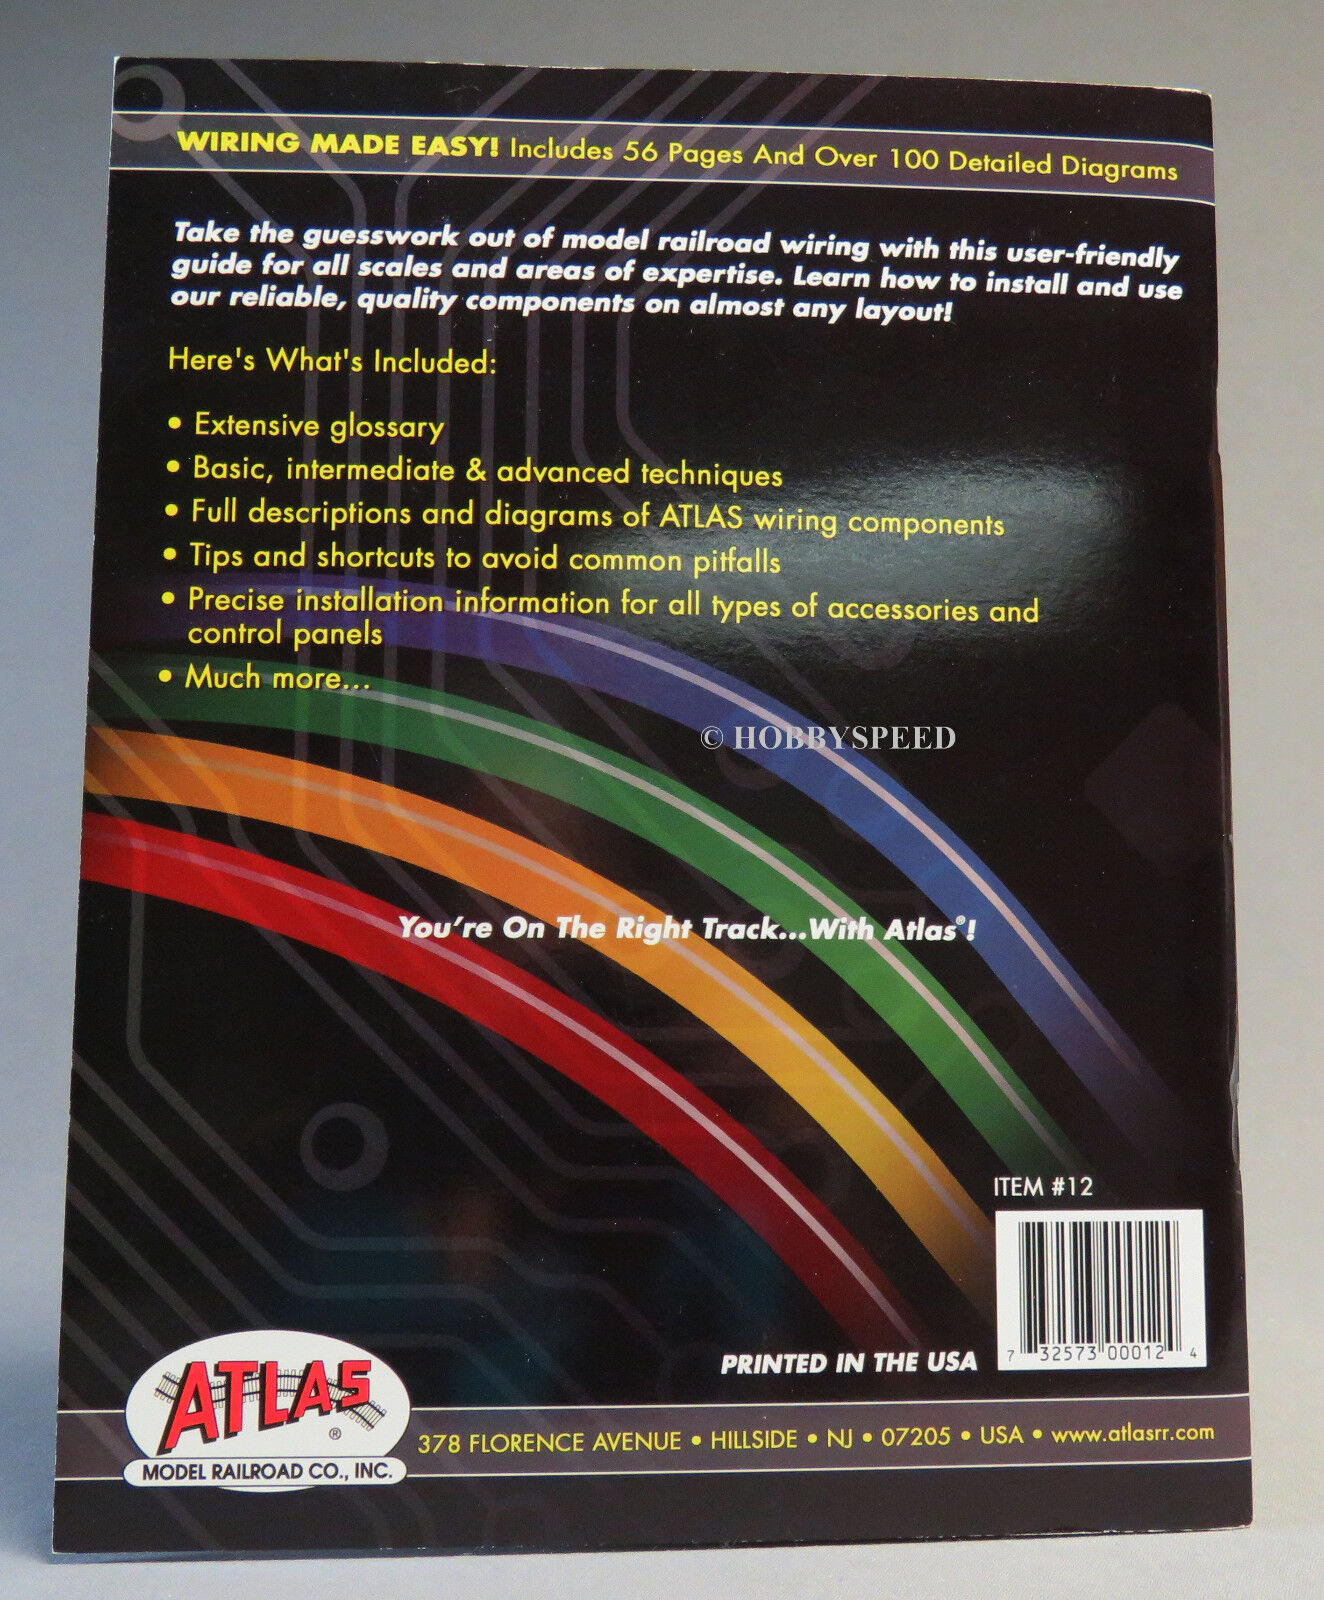 Atlas Train Wiring Schematic Diagrams Layout Diagram The Complete Book All Scales O Ho N G Gauge Marklin